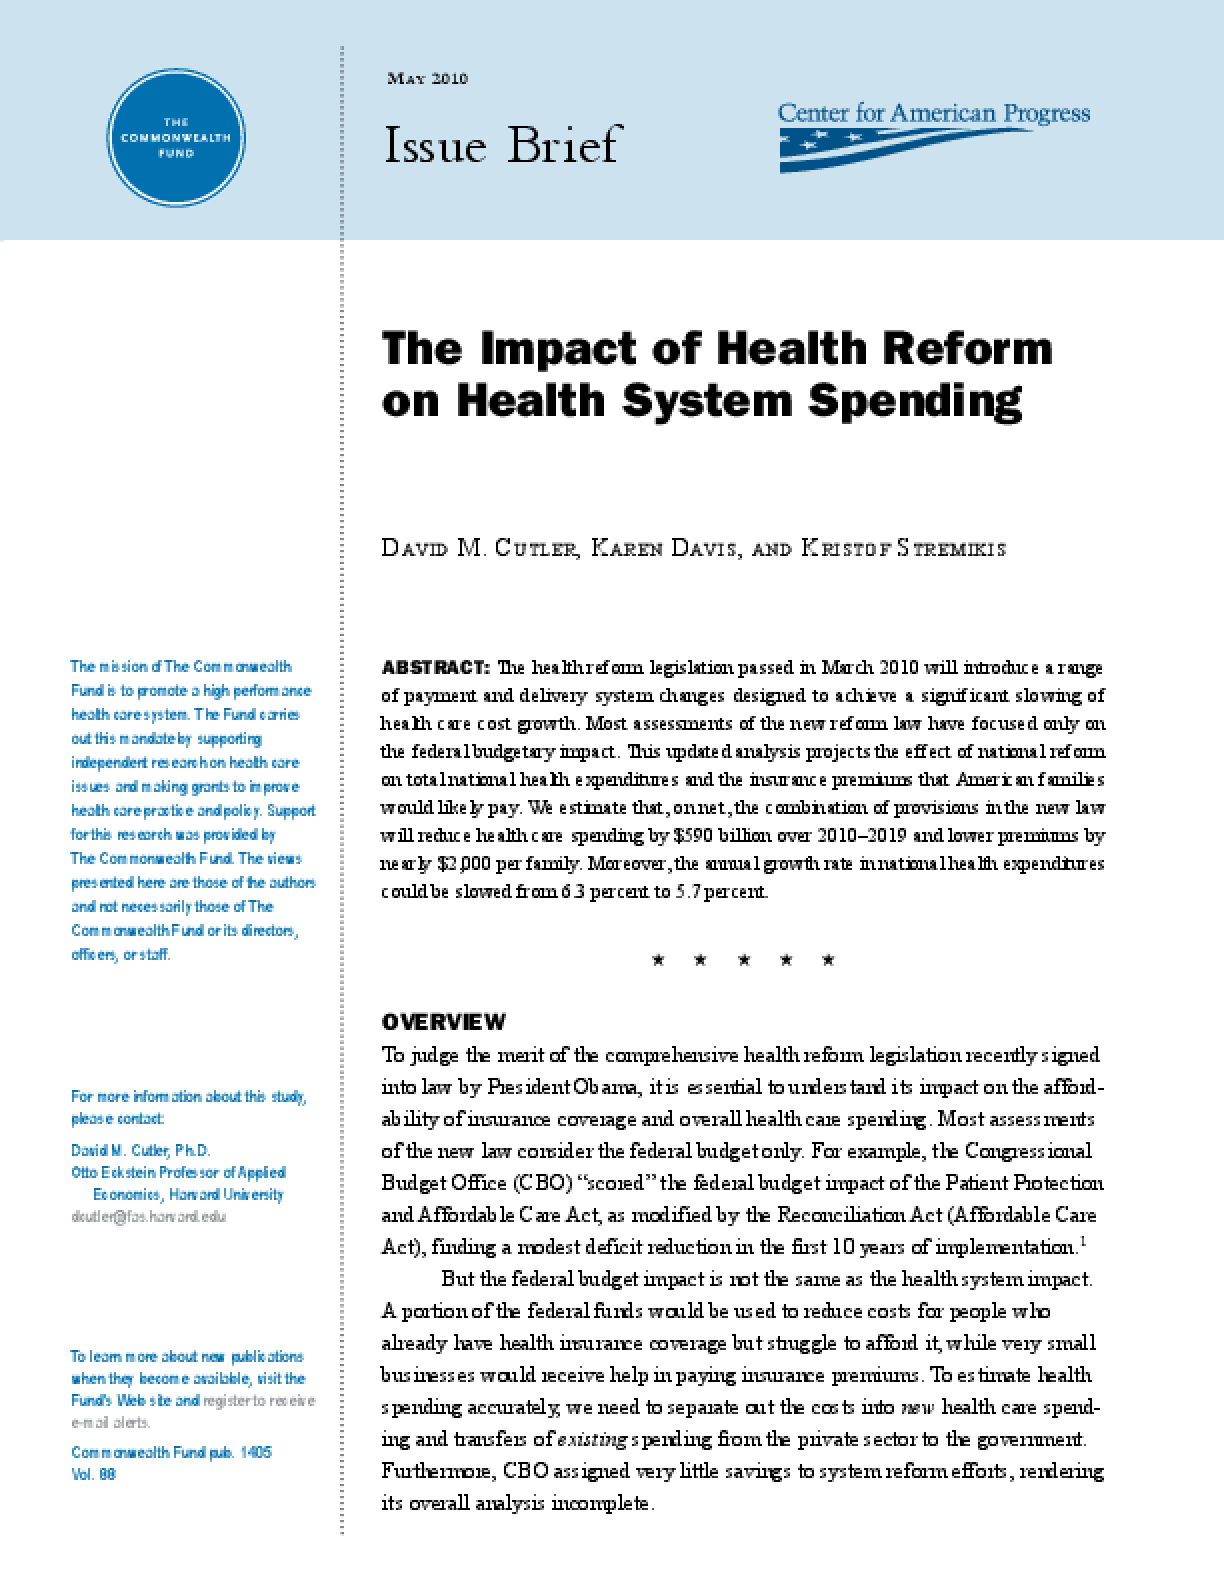 The Impact of Health Reform on Health System Spending